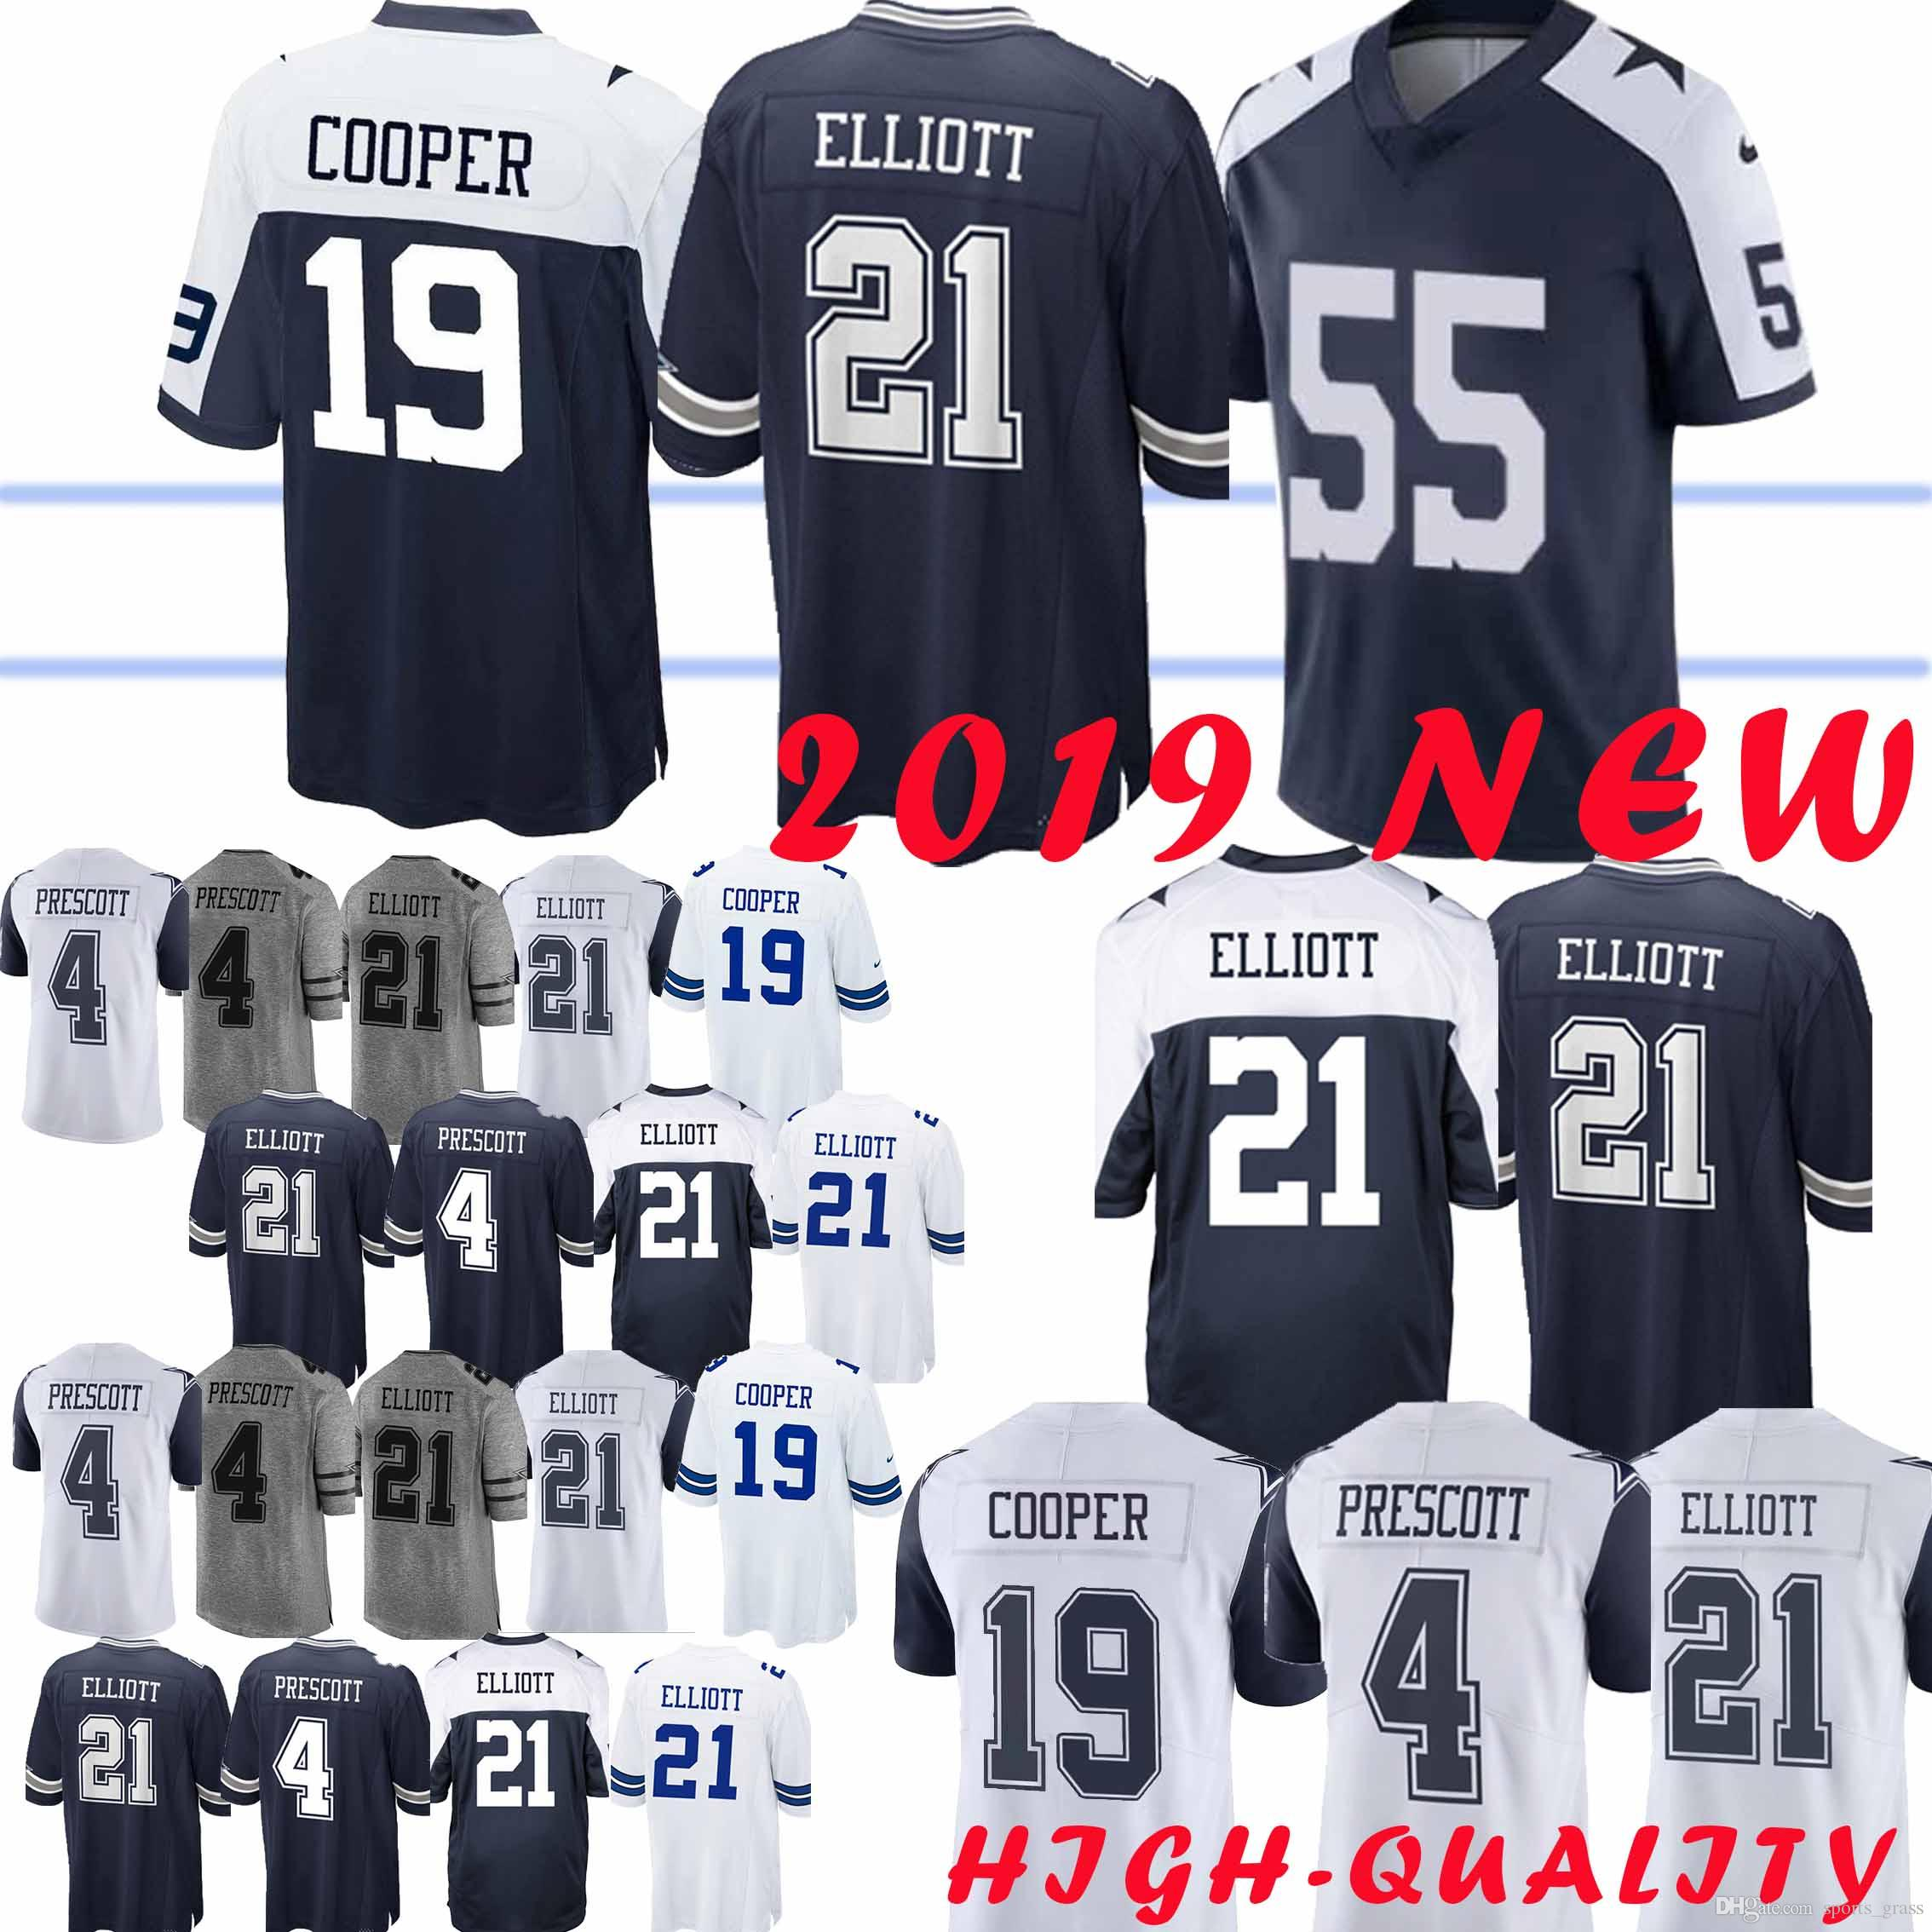 newest e50e8 fb07a 21 Ezekiel Elliott Dallas 55 Leighton Vander Esch jersey 4 Dak Prescott  Cowboys 19 Amari Cooper 82 Jason Witte jerseys High-quality 2019 new